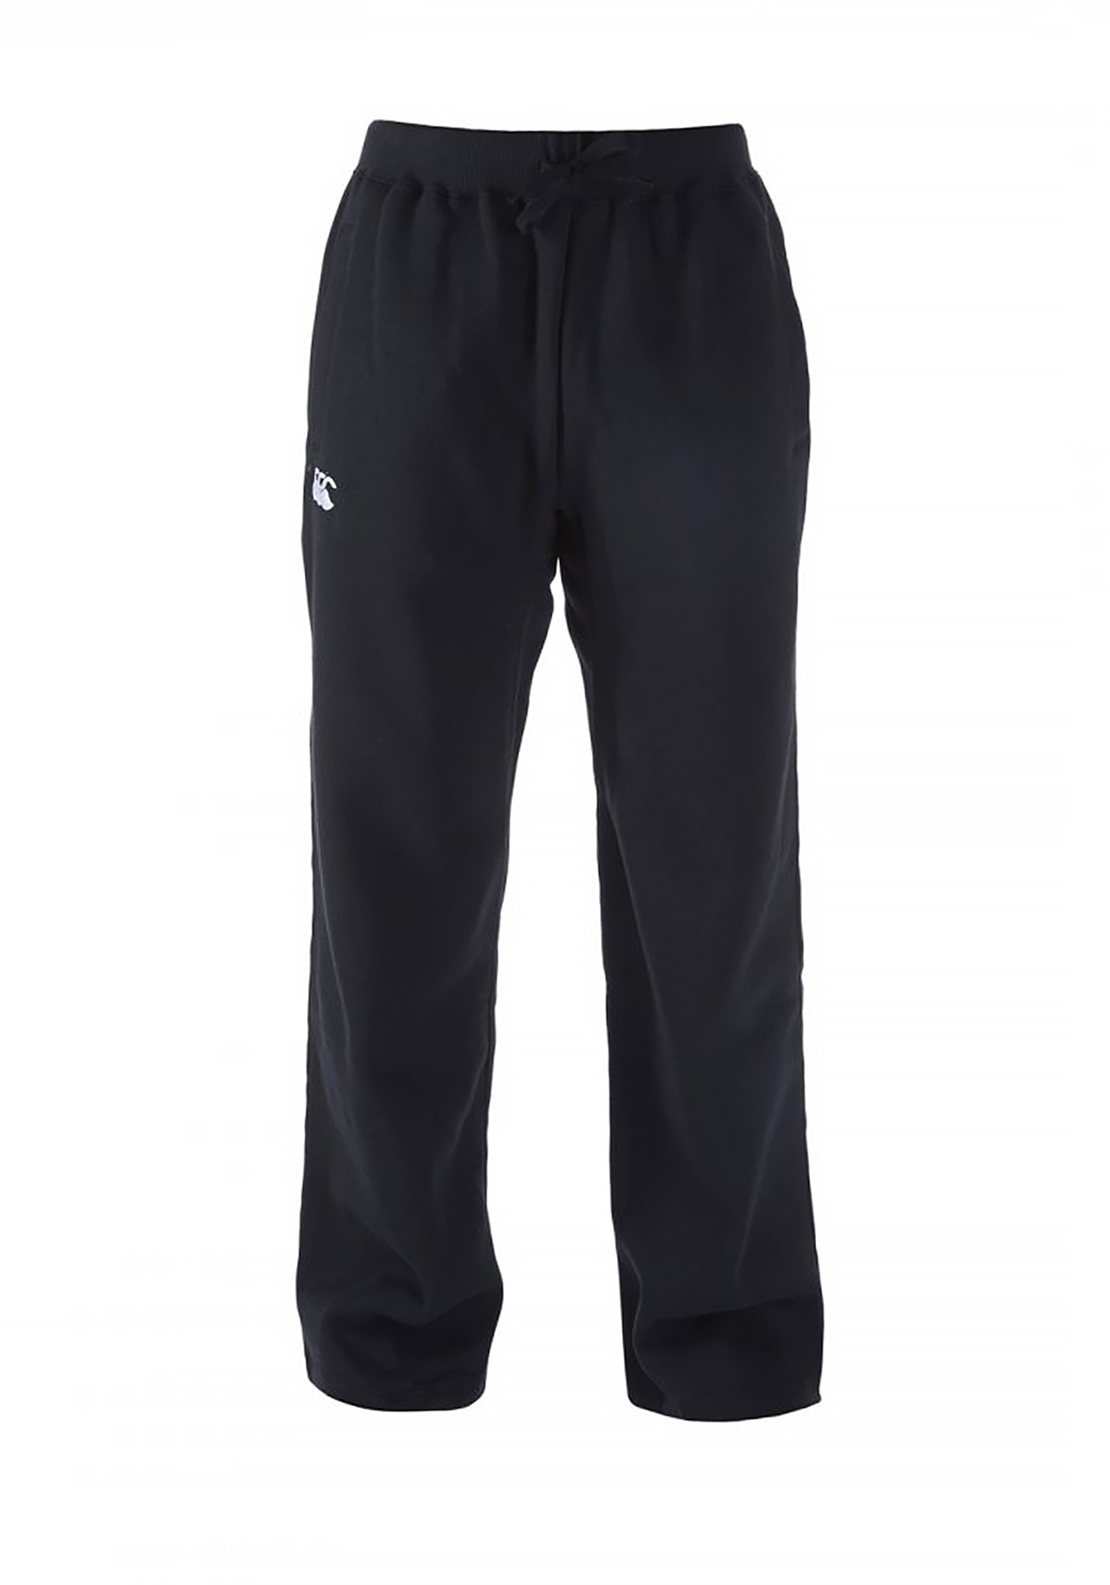 Canterbury Mens Combination Sweat Pant Bottoms, Black